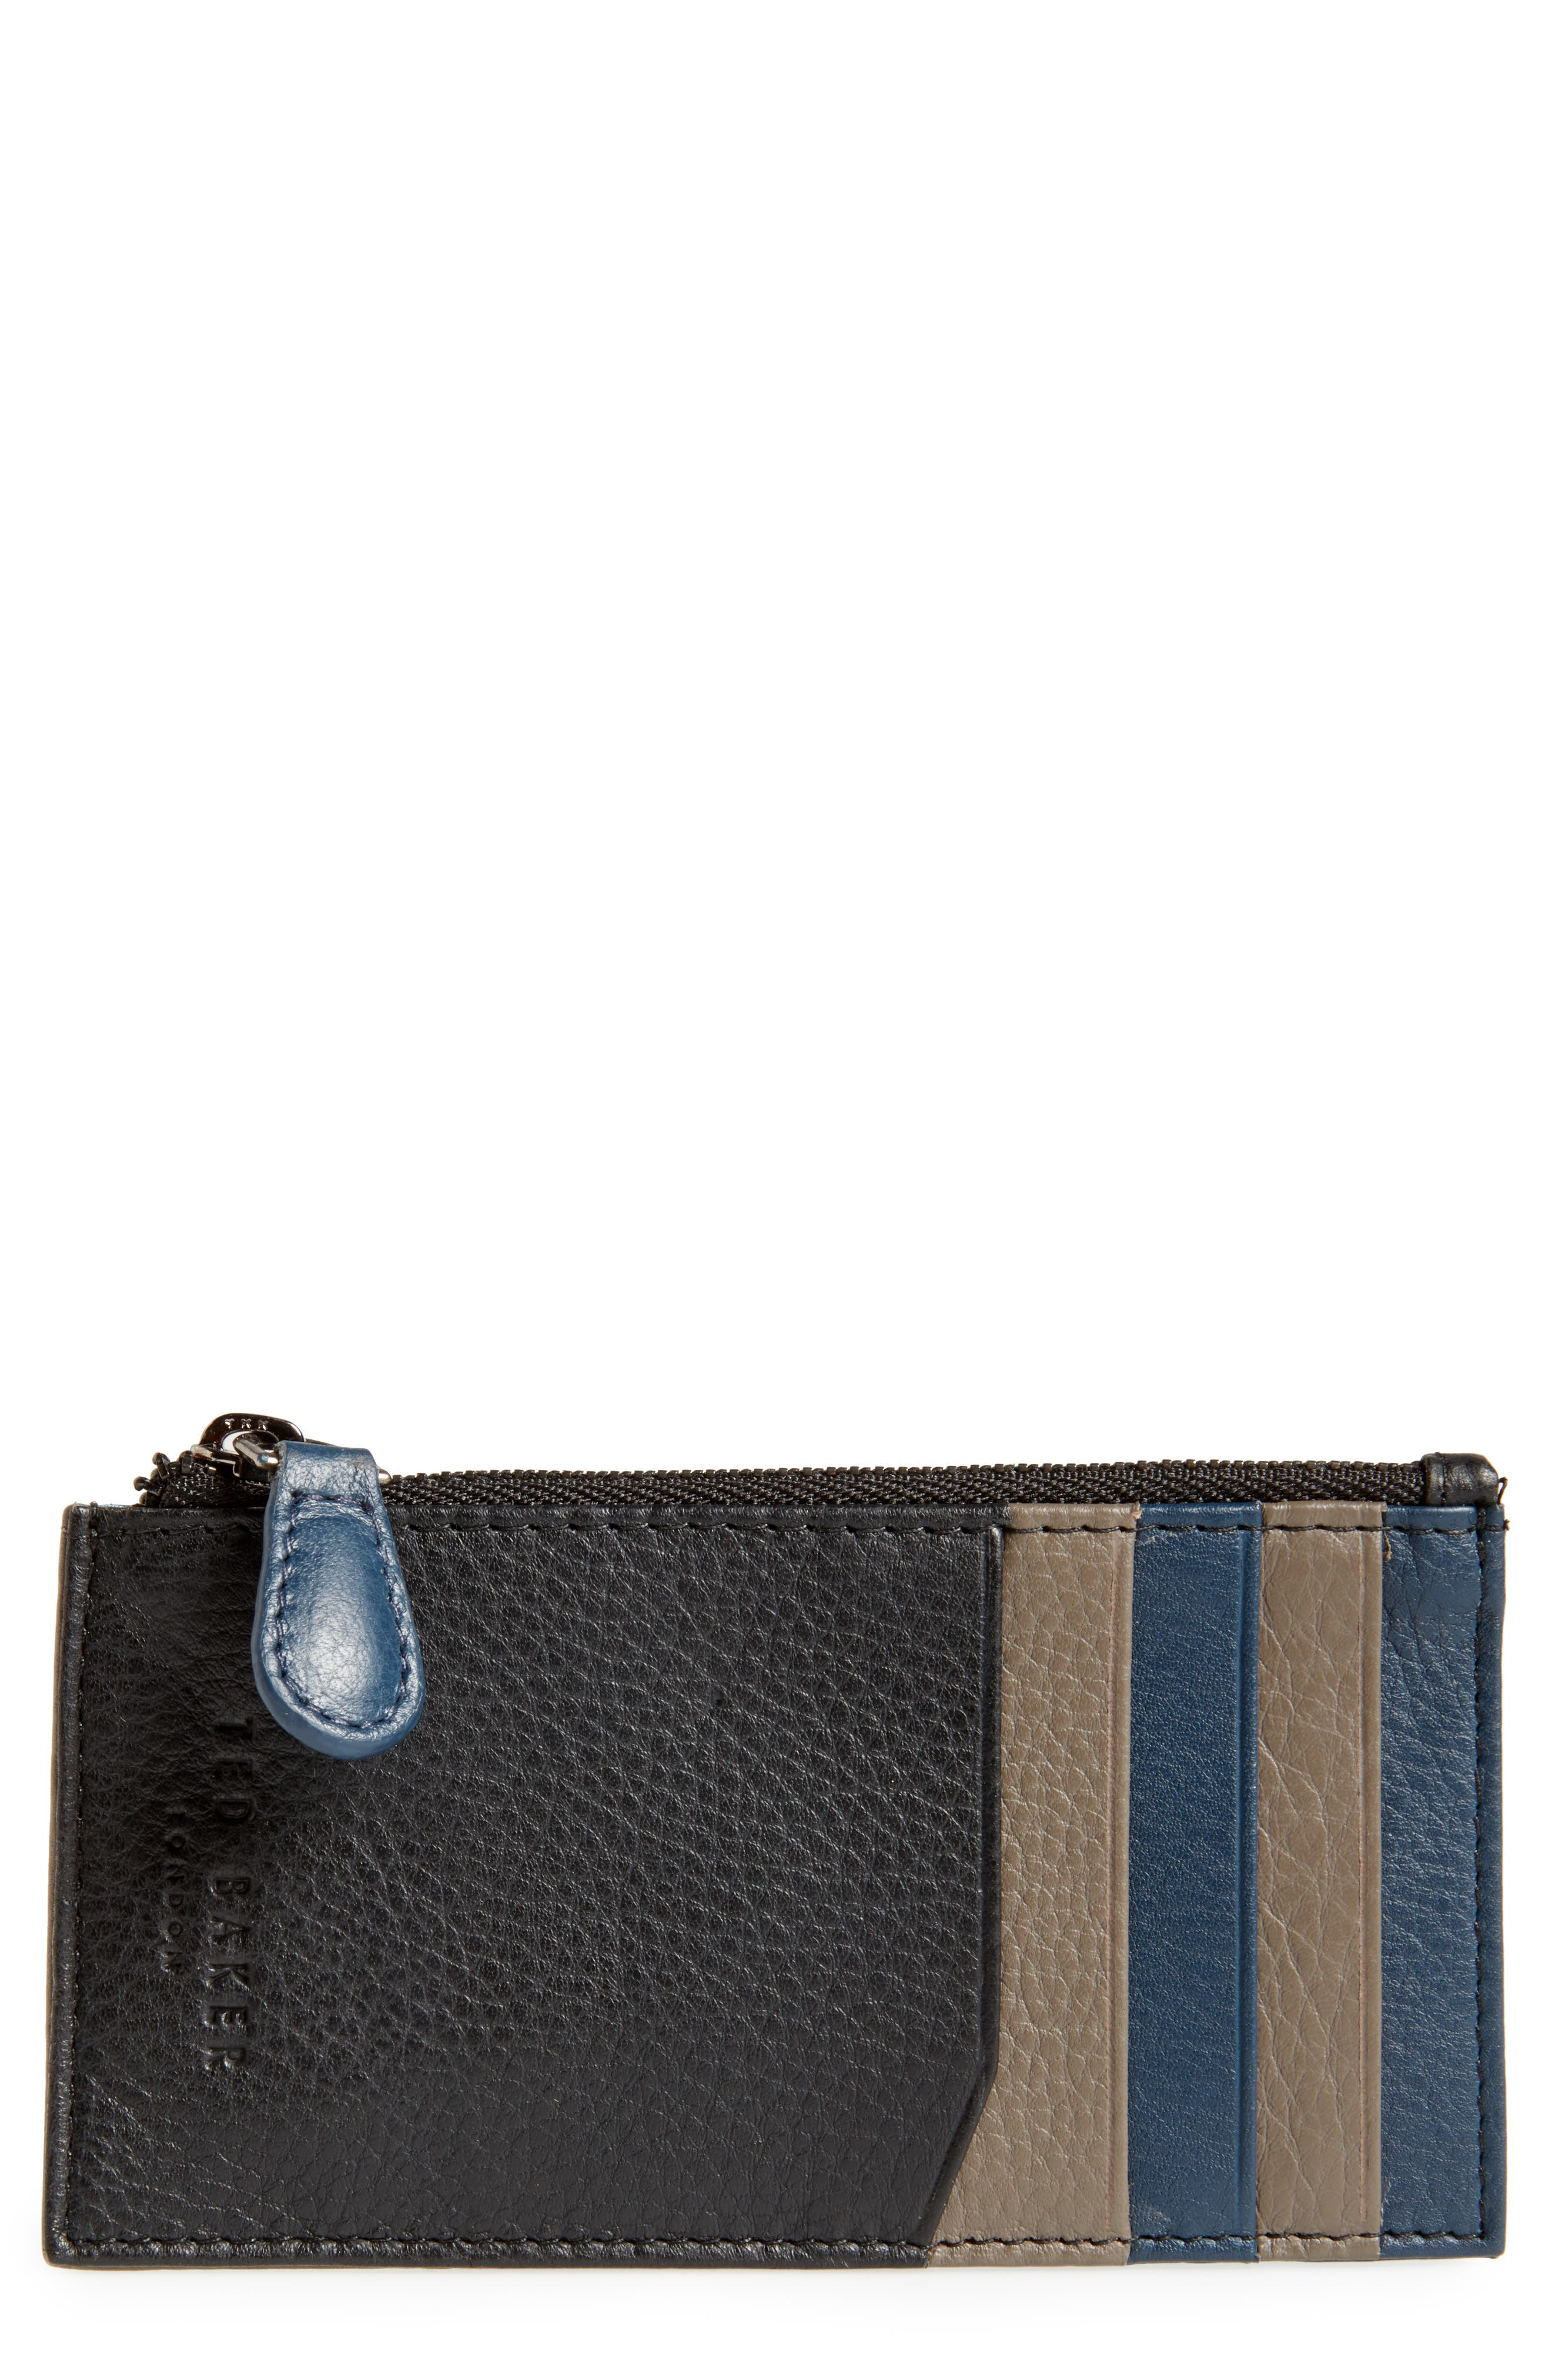 Jammee Leather Coin Pouch,                             Main thumbnail 1, color,                             001